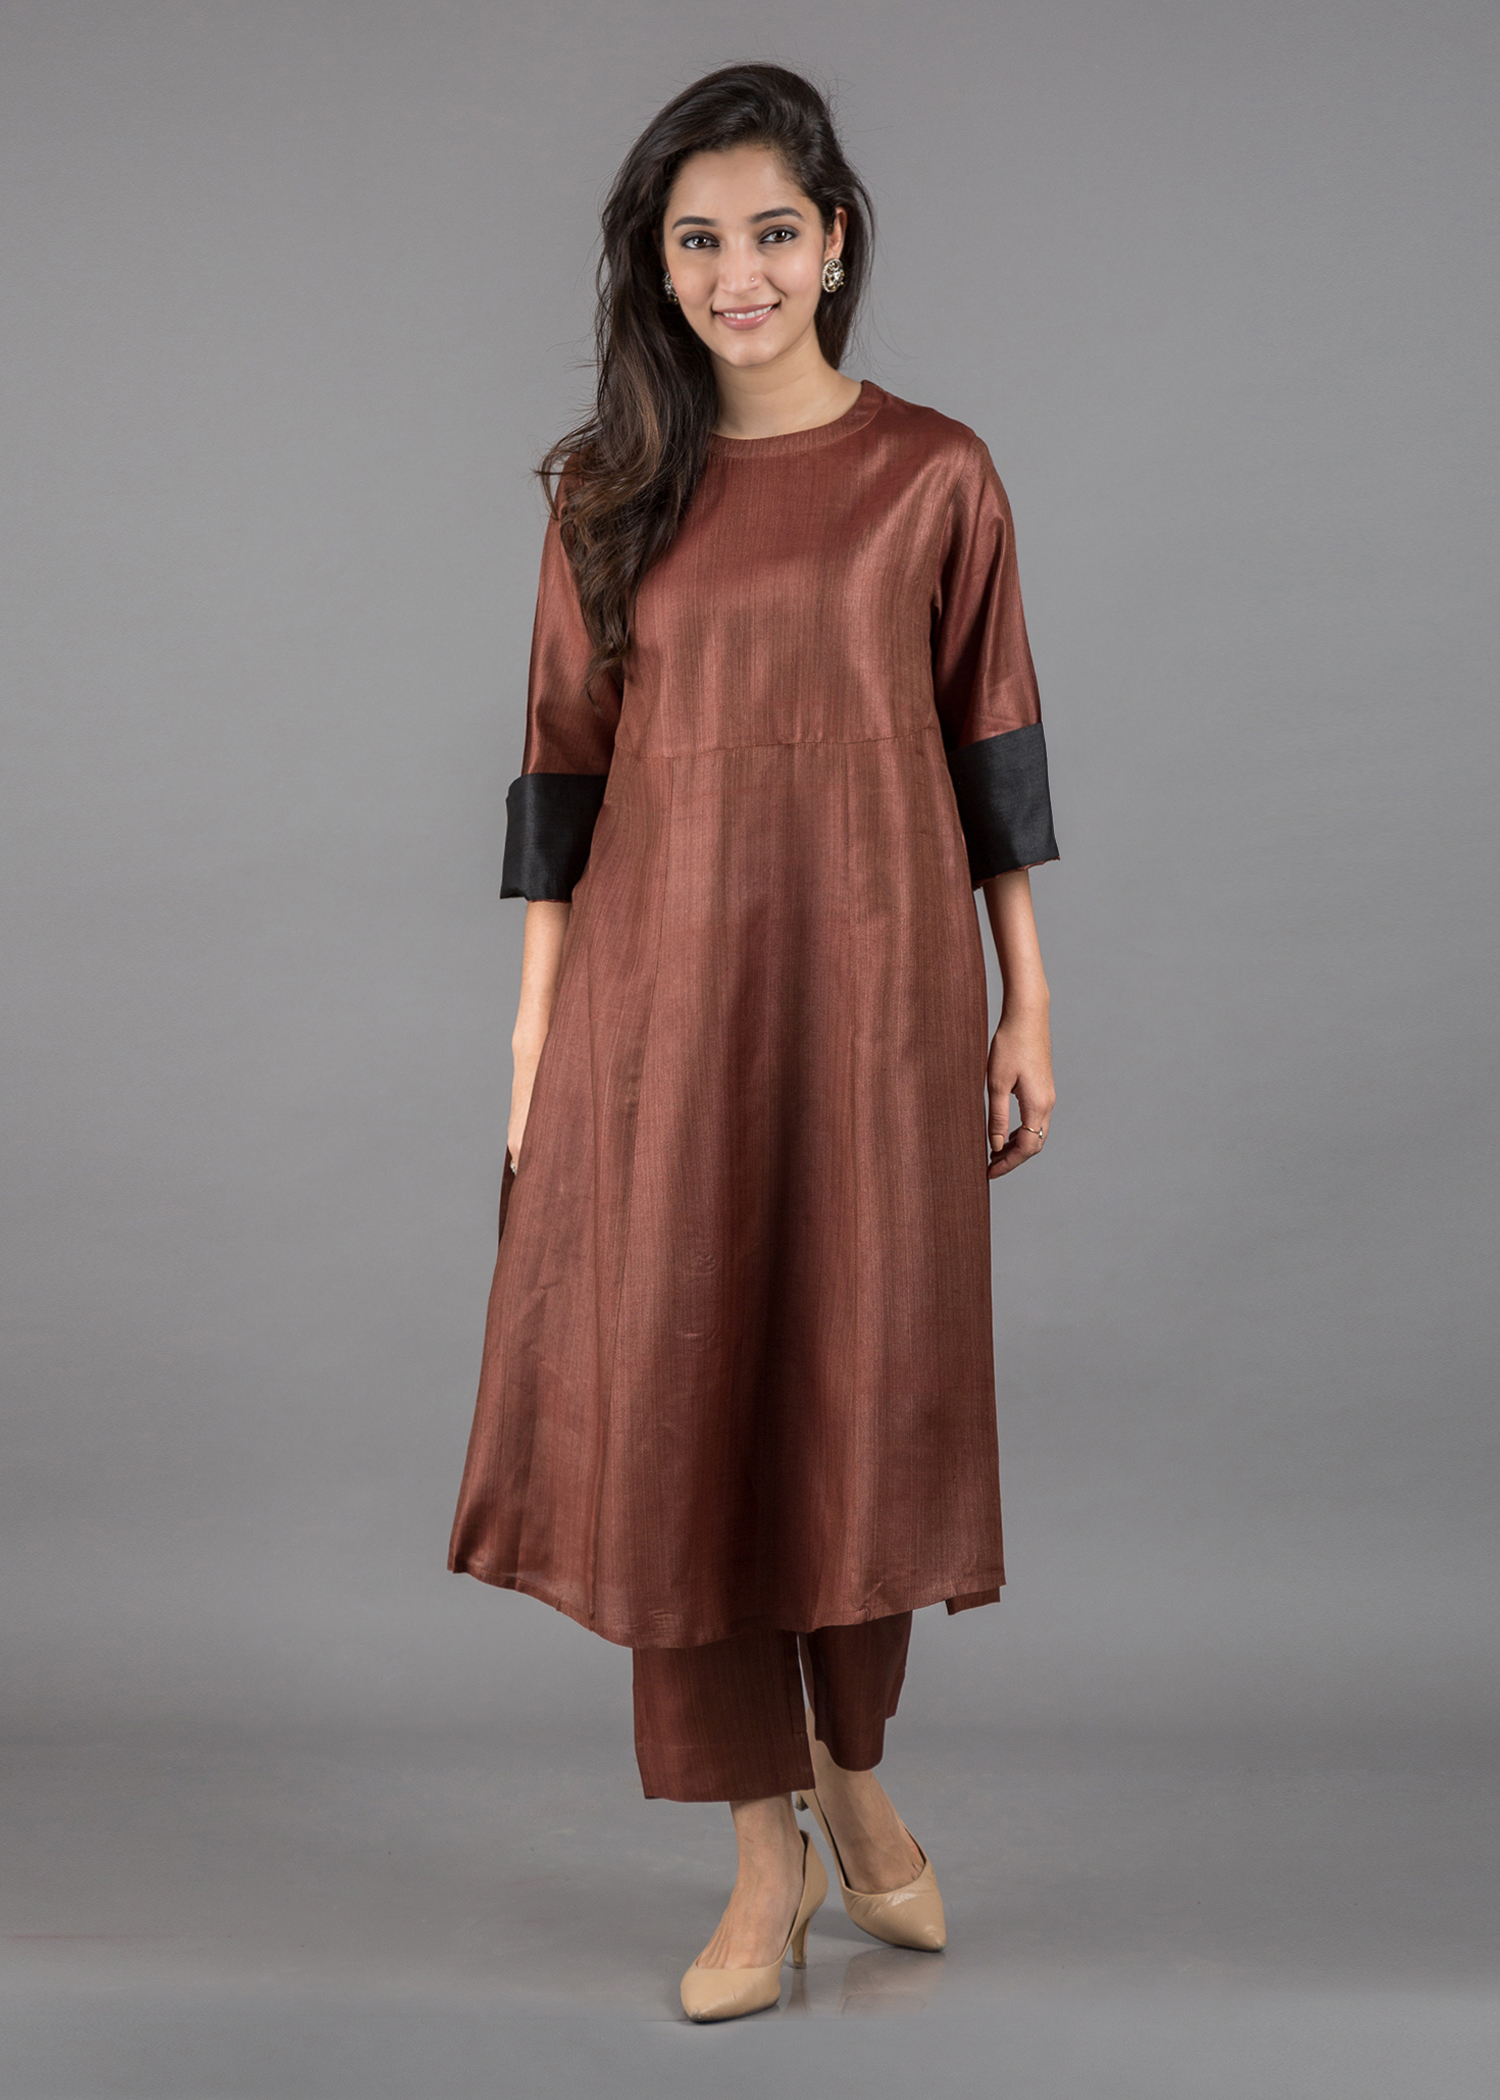 catalog/October-November 2017/brown silk 2.jpg